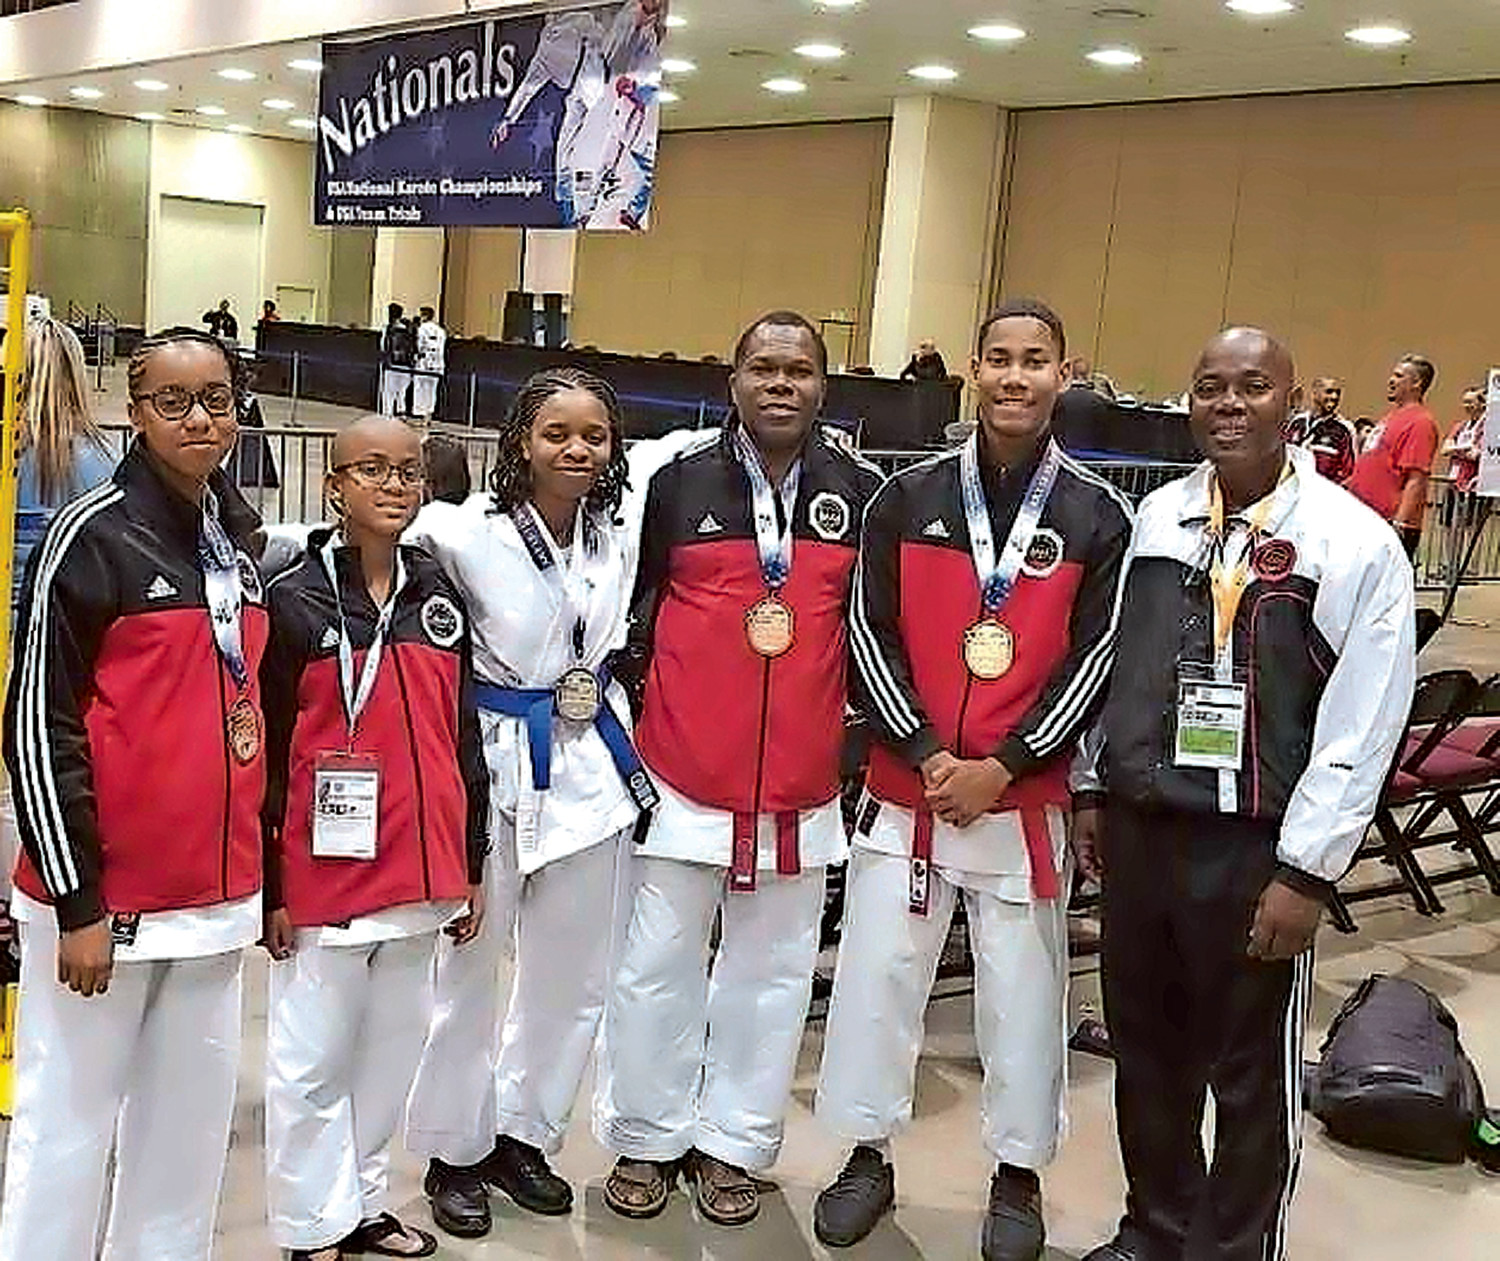 The Magic Five, from left, Jada and Anderson Lyn, Head Instructor Jessica Corbin, Assistant Instructor Jonathan Fleurant and Assistant Instructor Kohei Clark, with Sensei Serge Clark, competed in the 2018 USA National Karate Championships and Team Trials in Reno, Nev., in July.